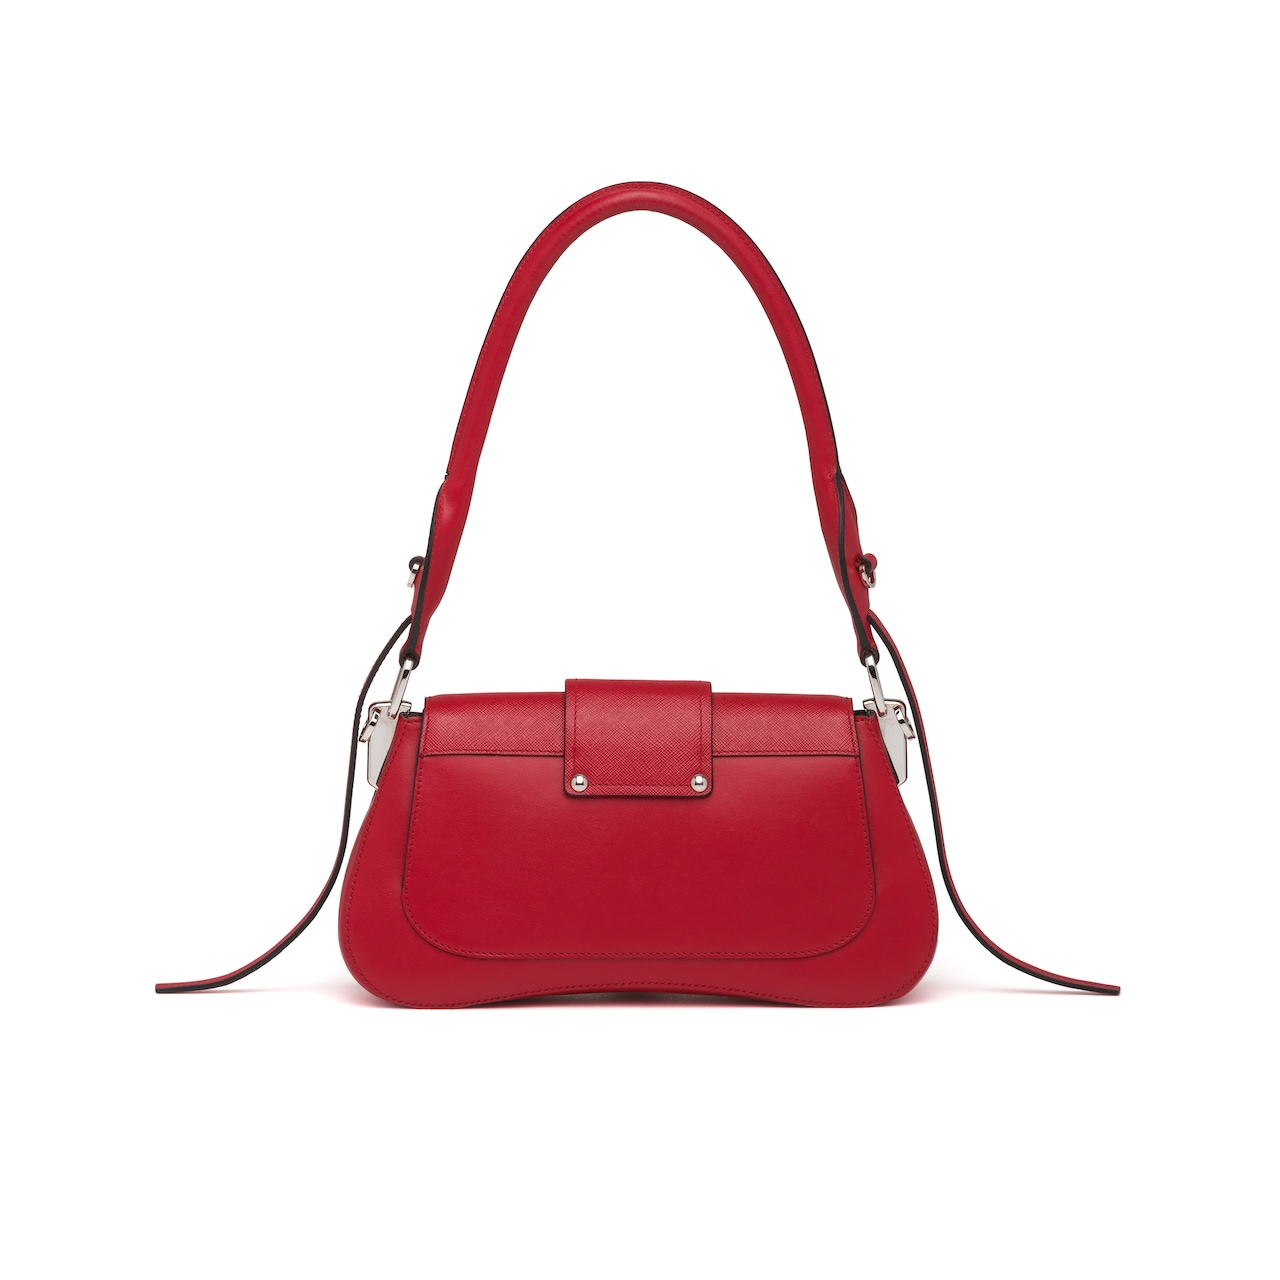 Prada Prada Sidonie shoulder bag 4